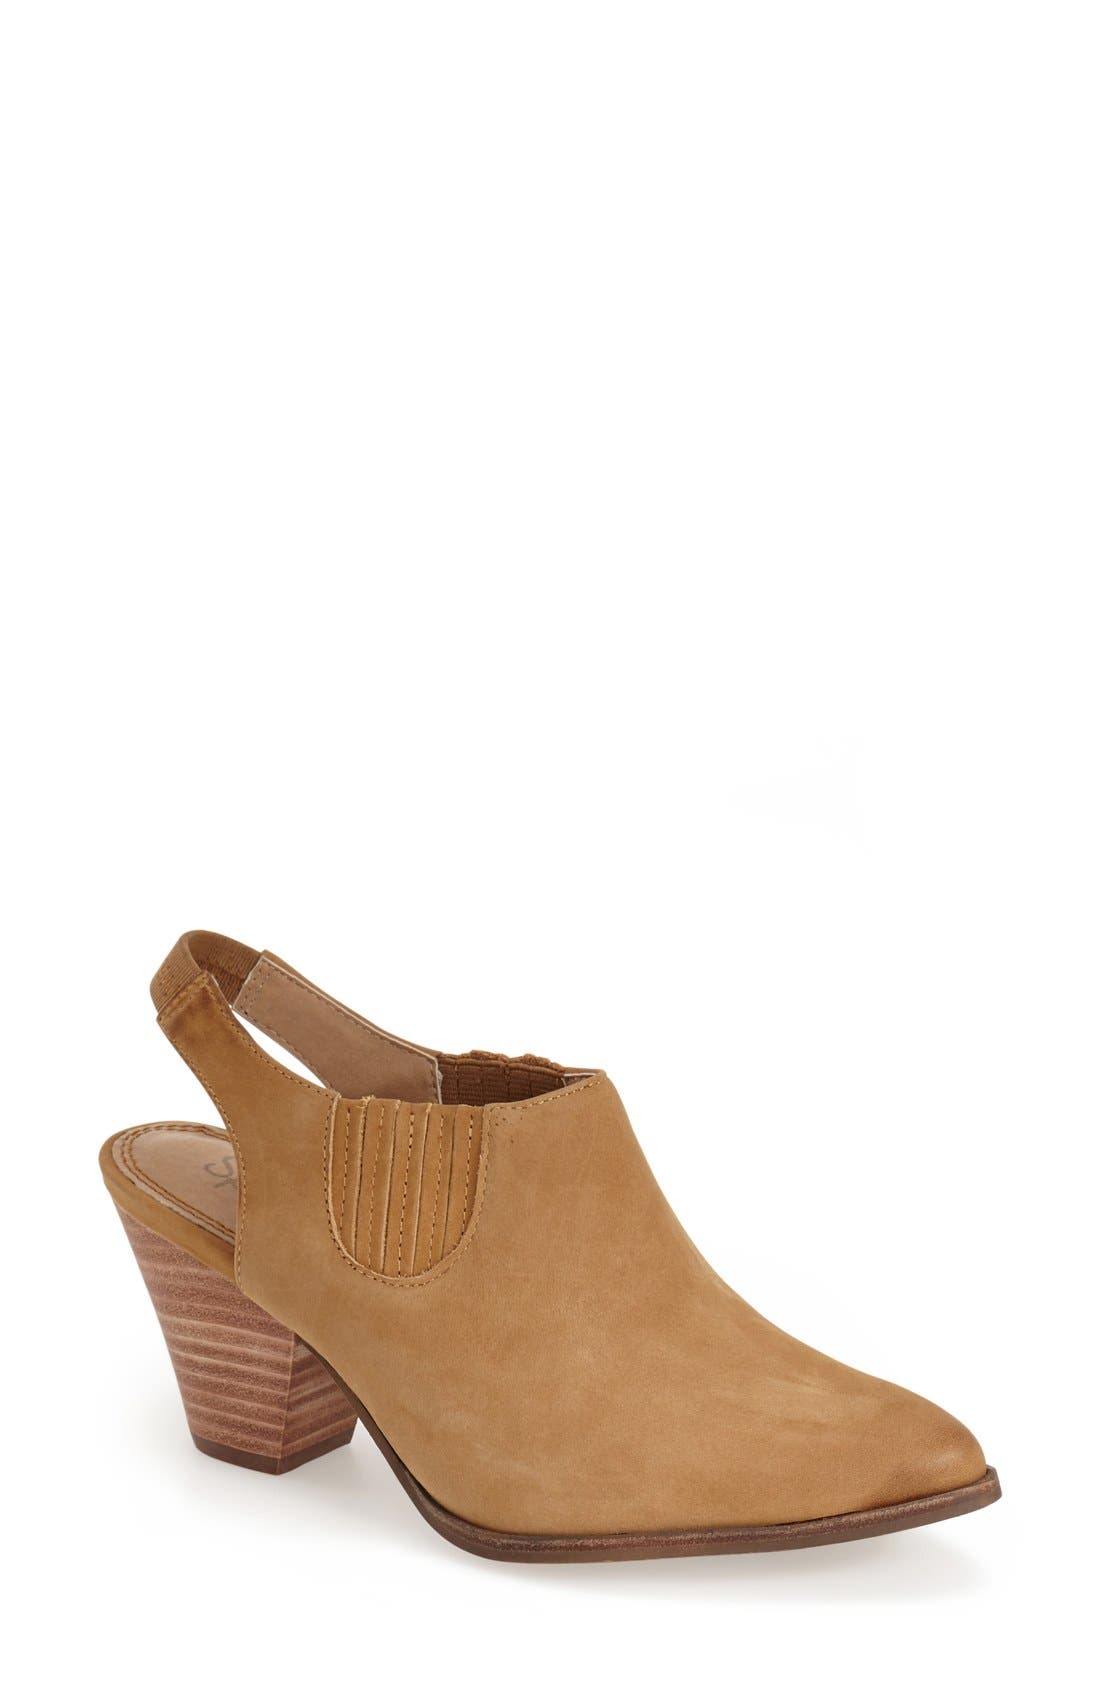 Alternate Image 1 Selected - Splendid 'Averie' Slingback Bootie (Women)